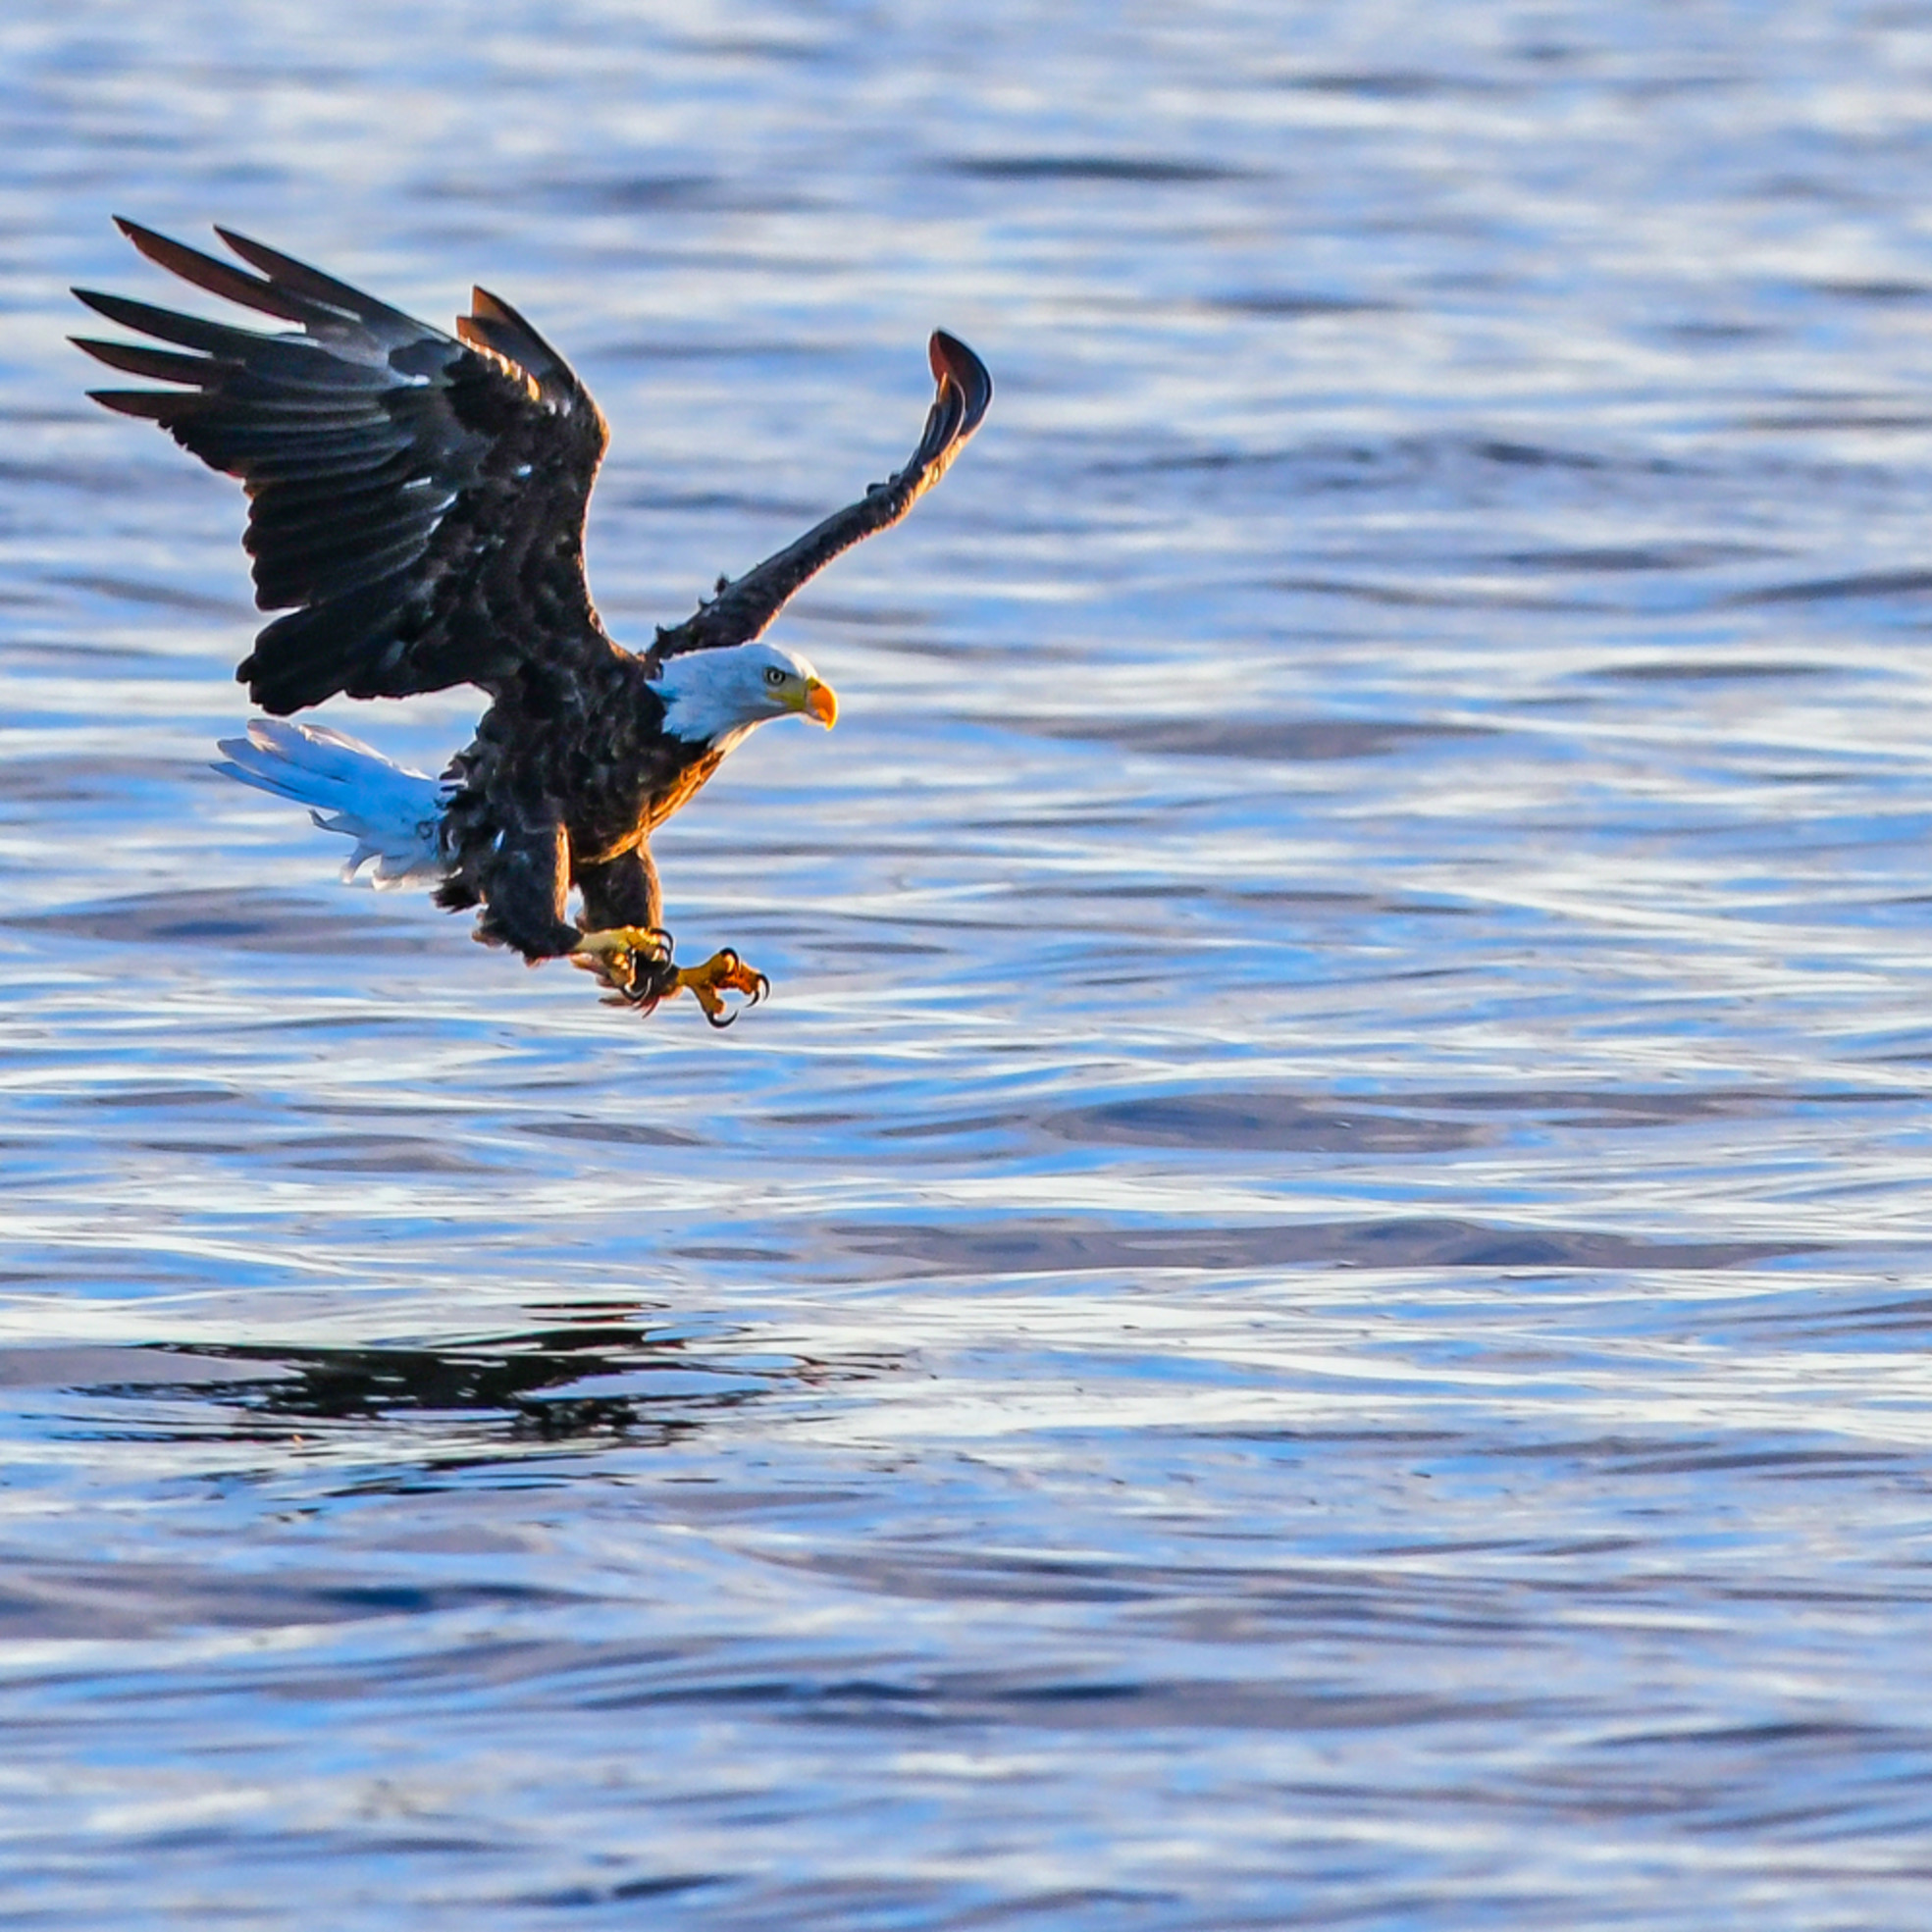 Andy crawford photography eagle catching fish 2 sryxr2